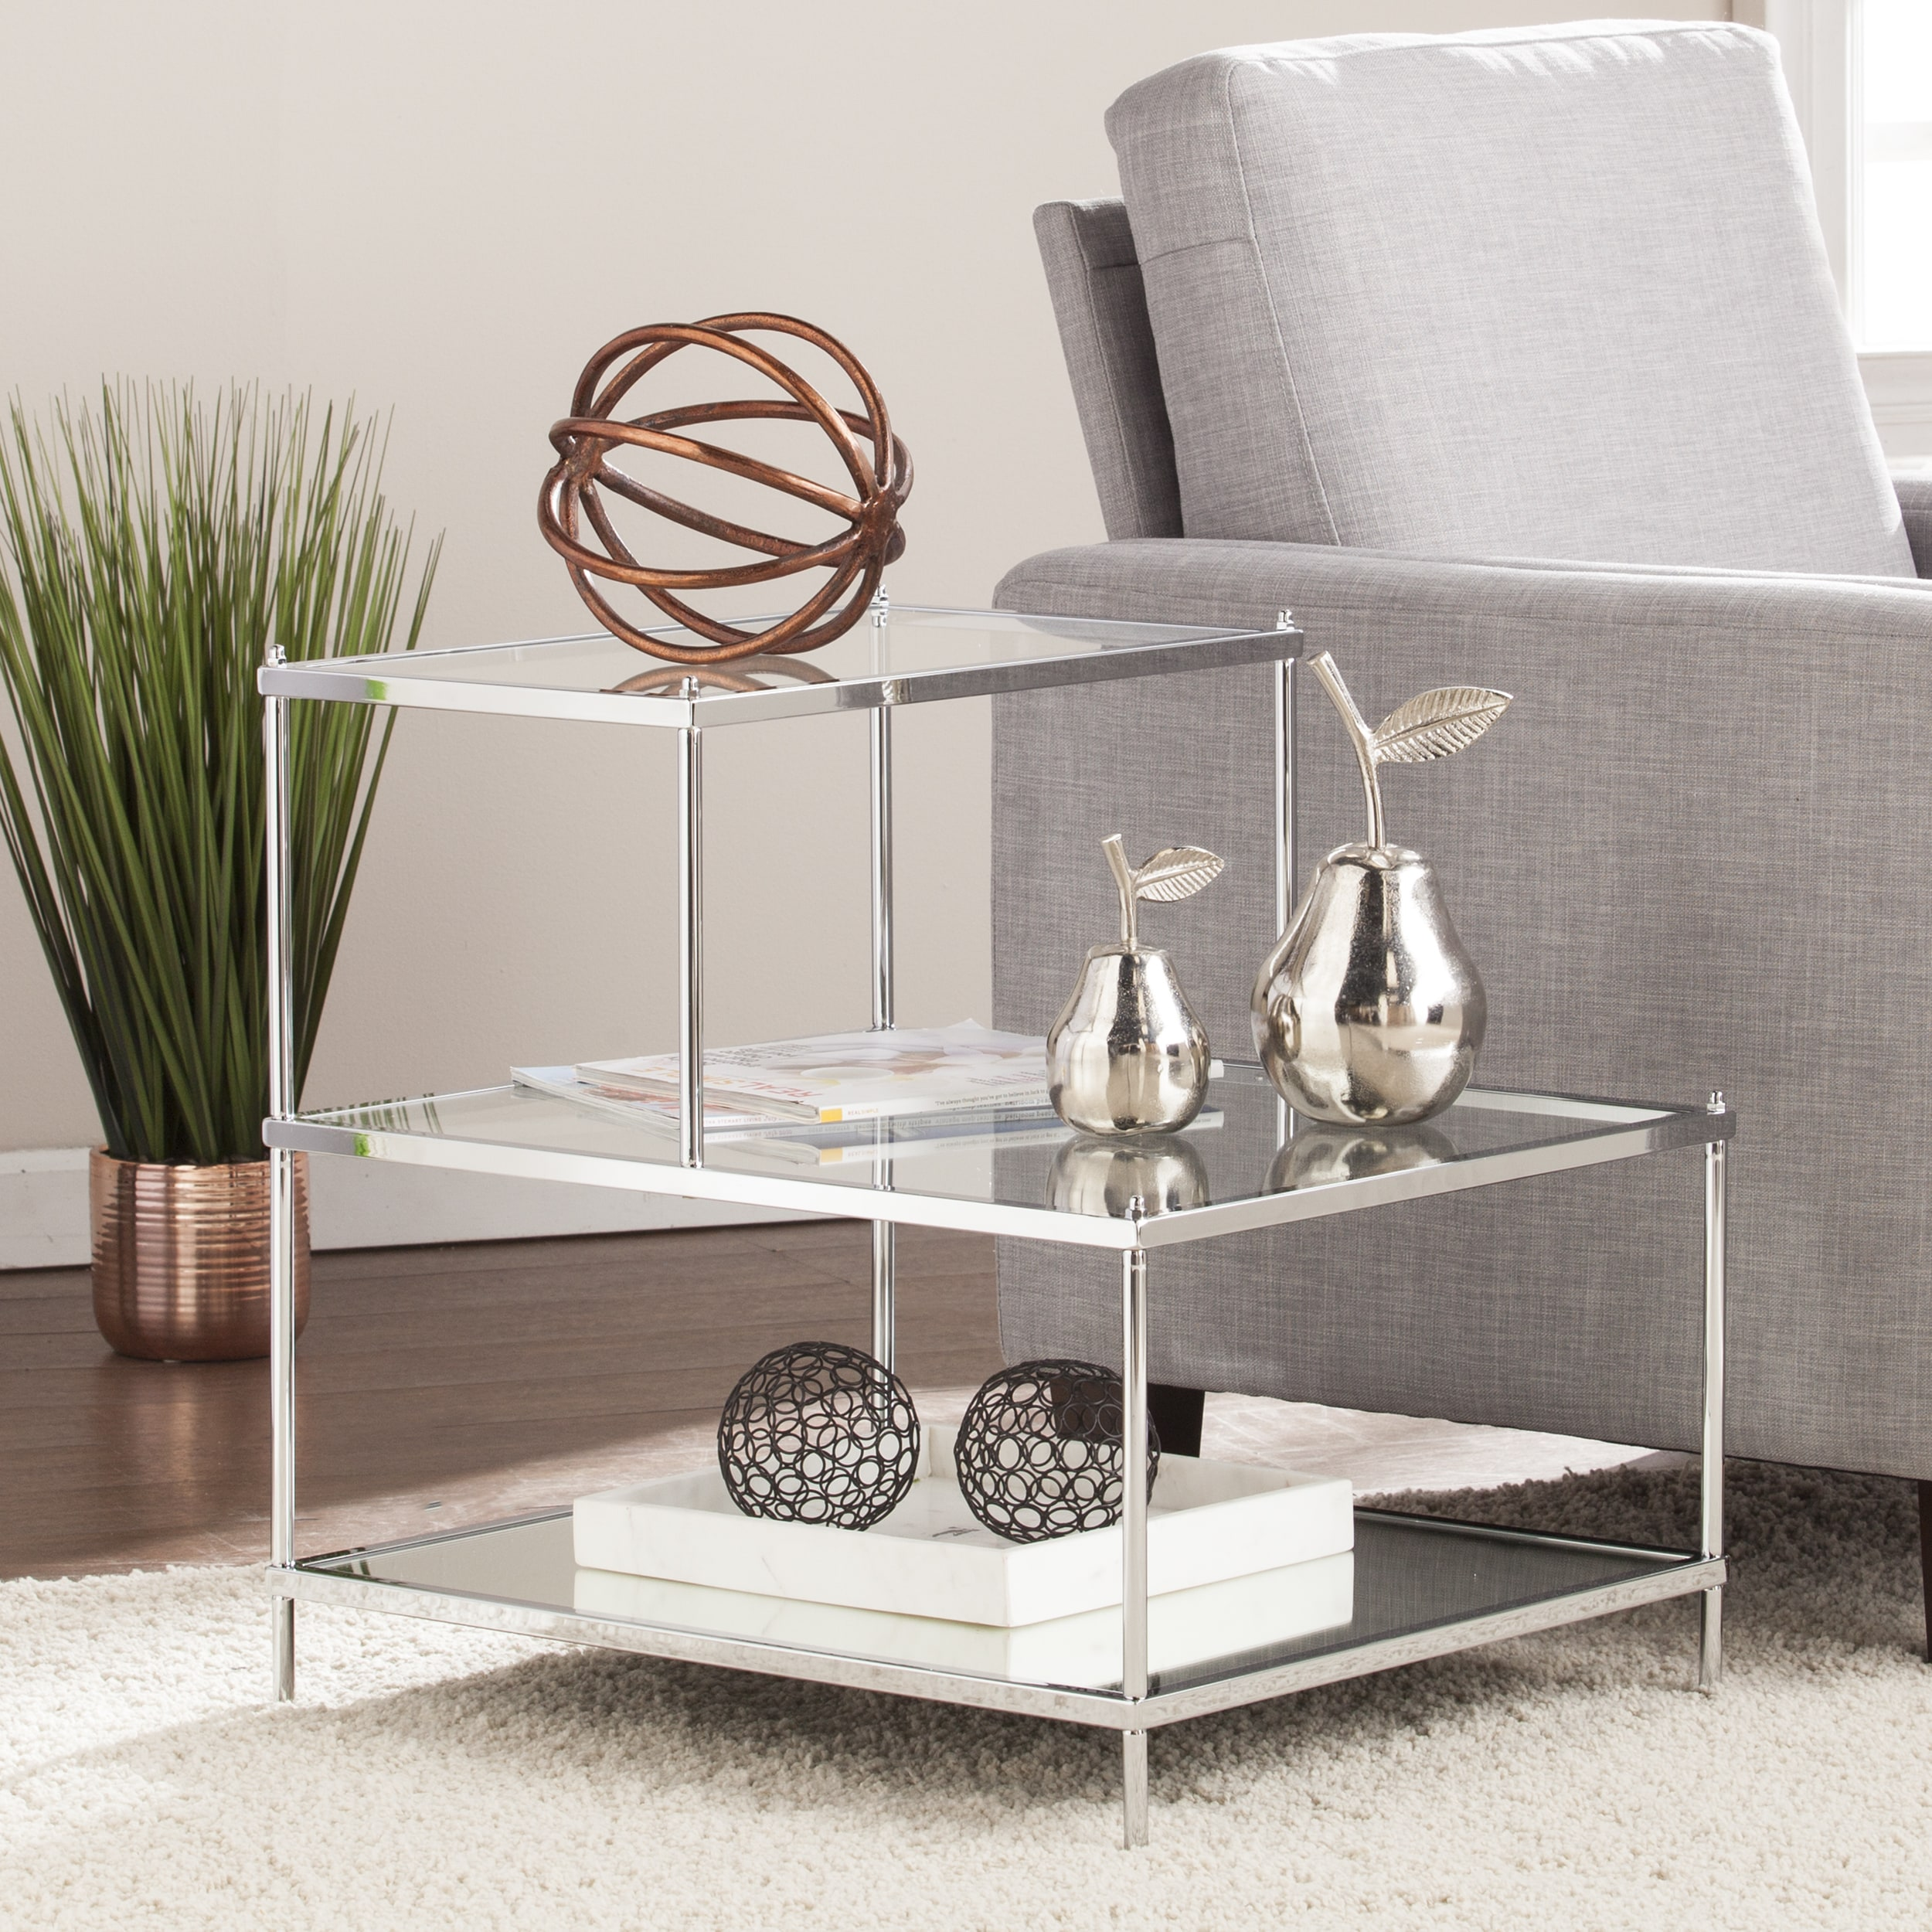 Harper Blvd Knowles Glam Mirrored Accent Table Chrome